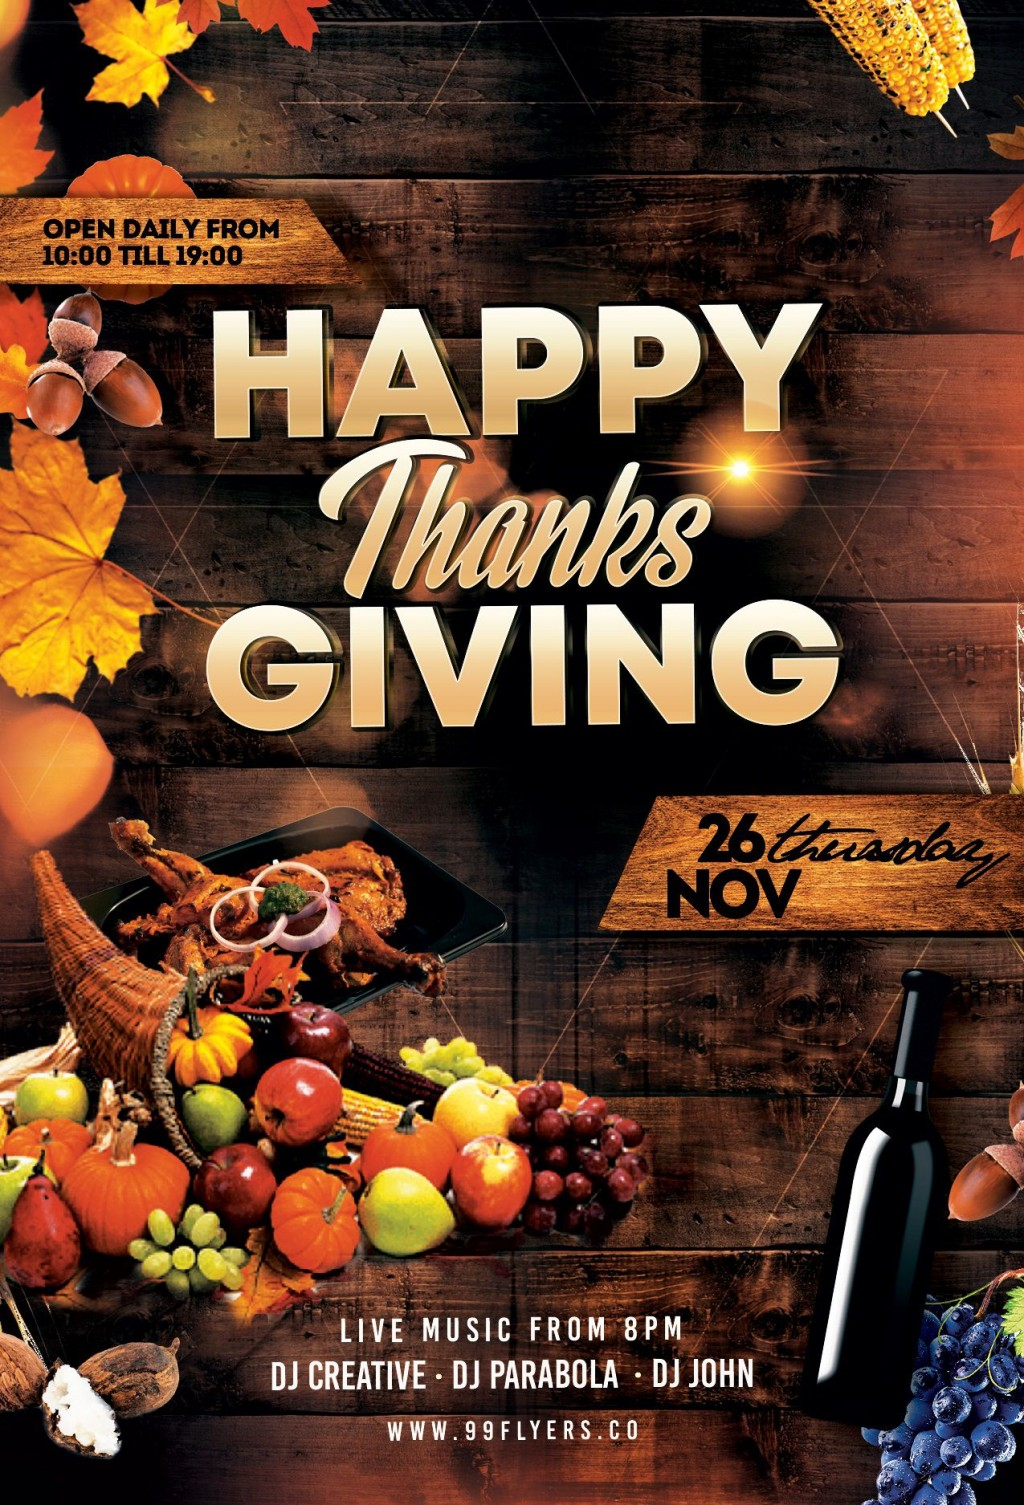 005 Frightening Thanksgiving Flyer Template Free Concept  Food Drive PartyLarge